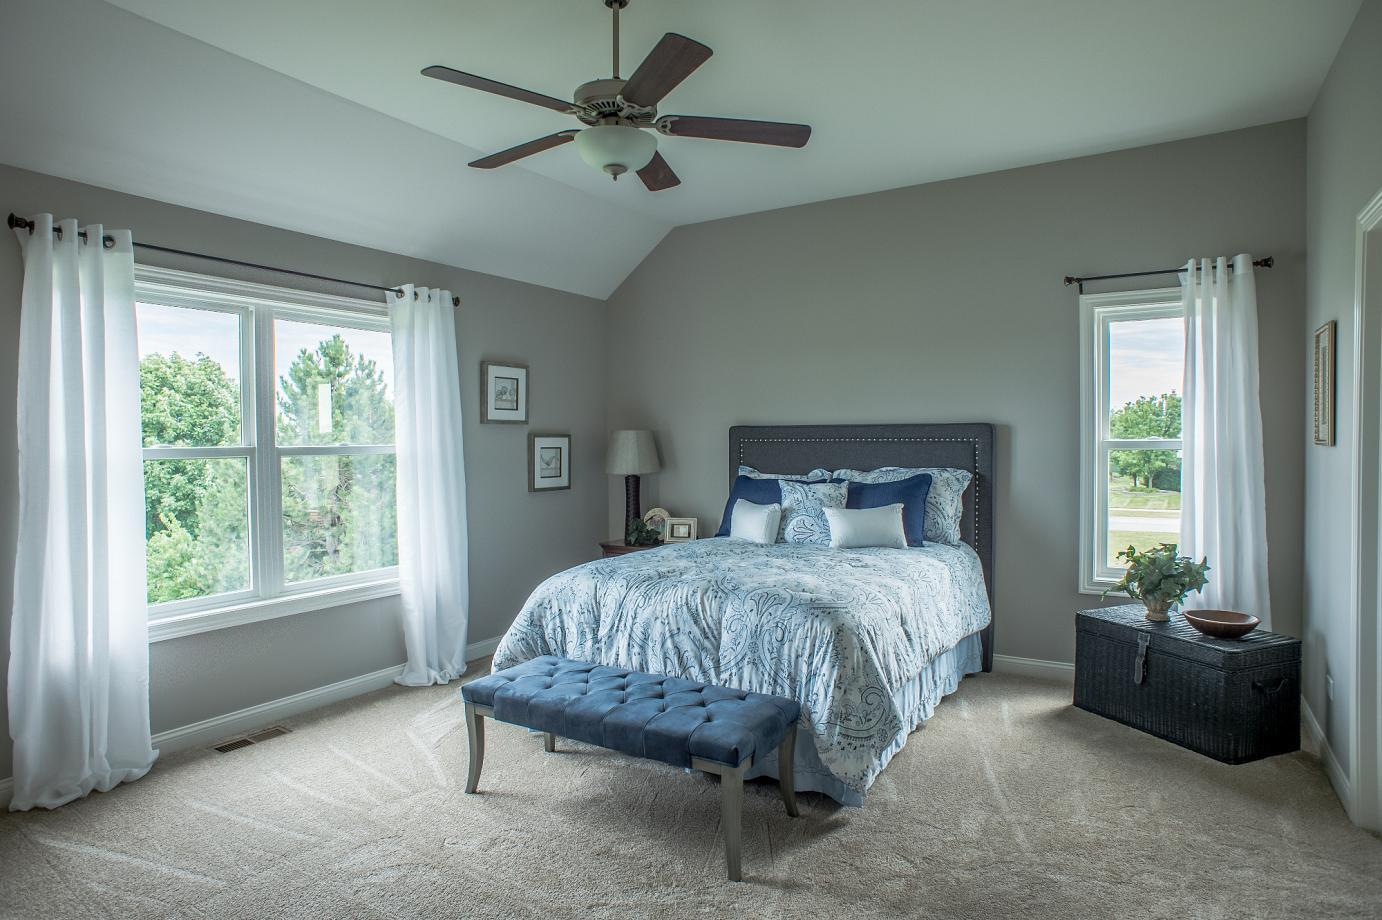 Bedroom featured in the Danbury By Gallagher and Henry in Chicago, IL